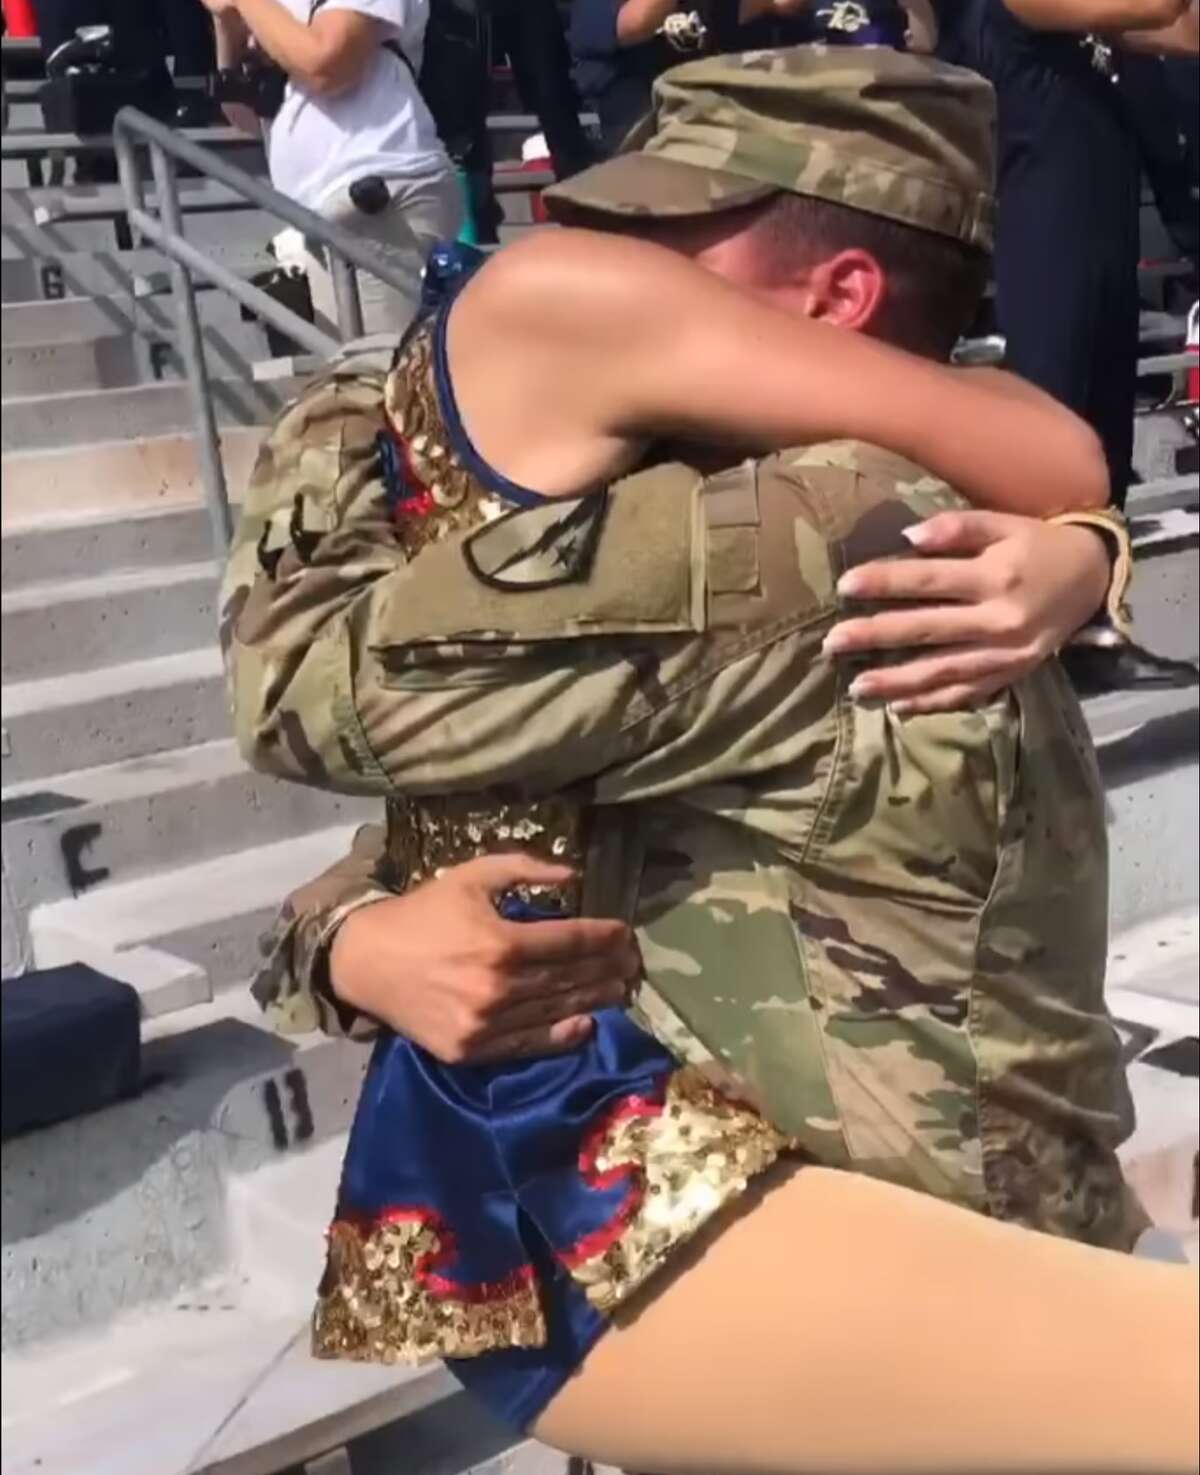 U.S. Army Specialist Jared Herman, who had been deployed overseas for a year, gave his sister a homecoming surprise during her high school's homecoming football game on Saturday.